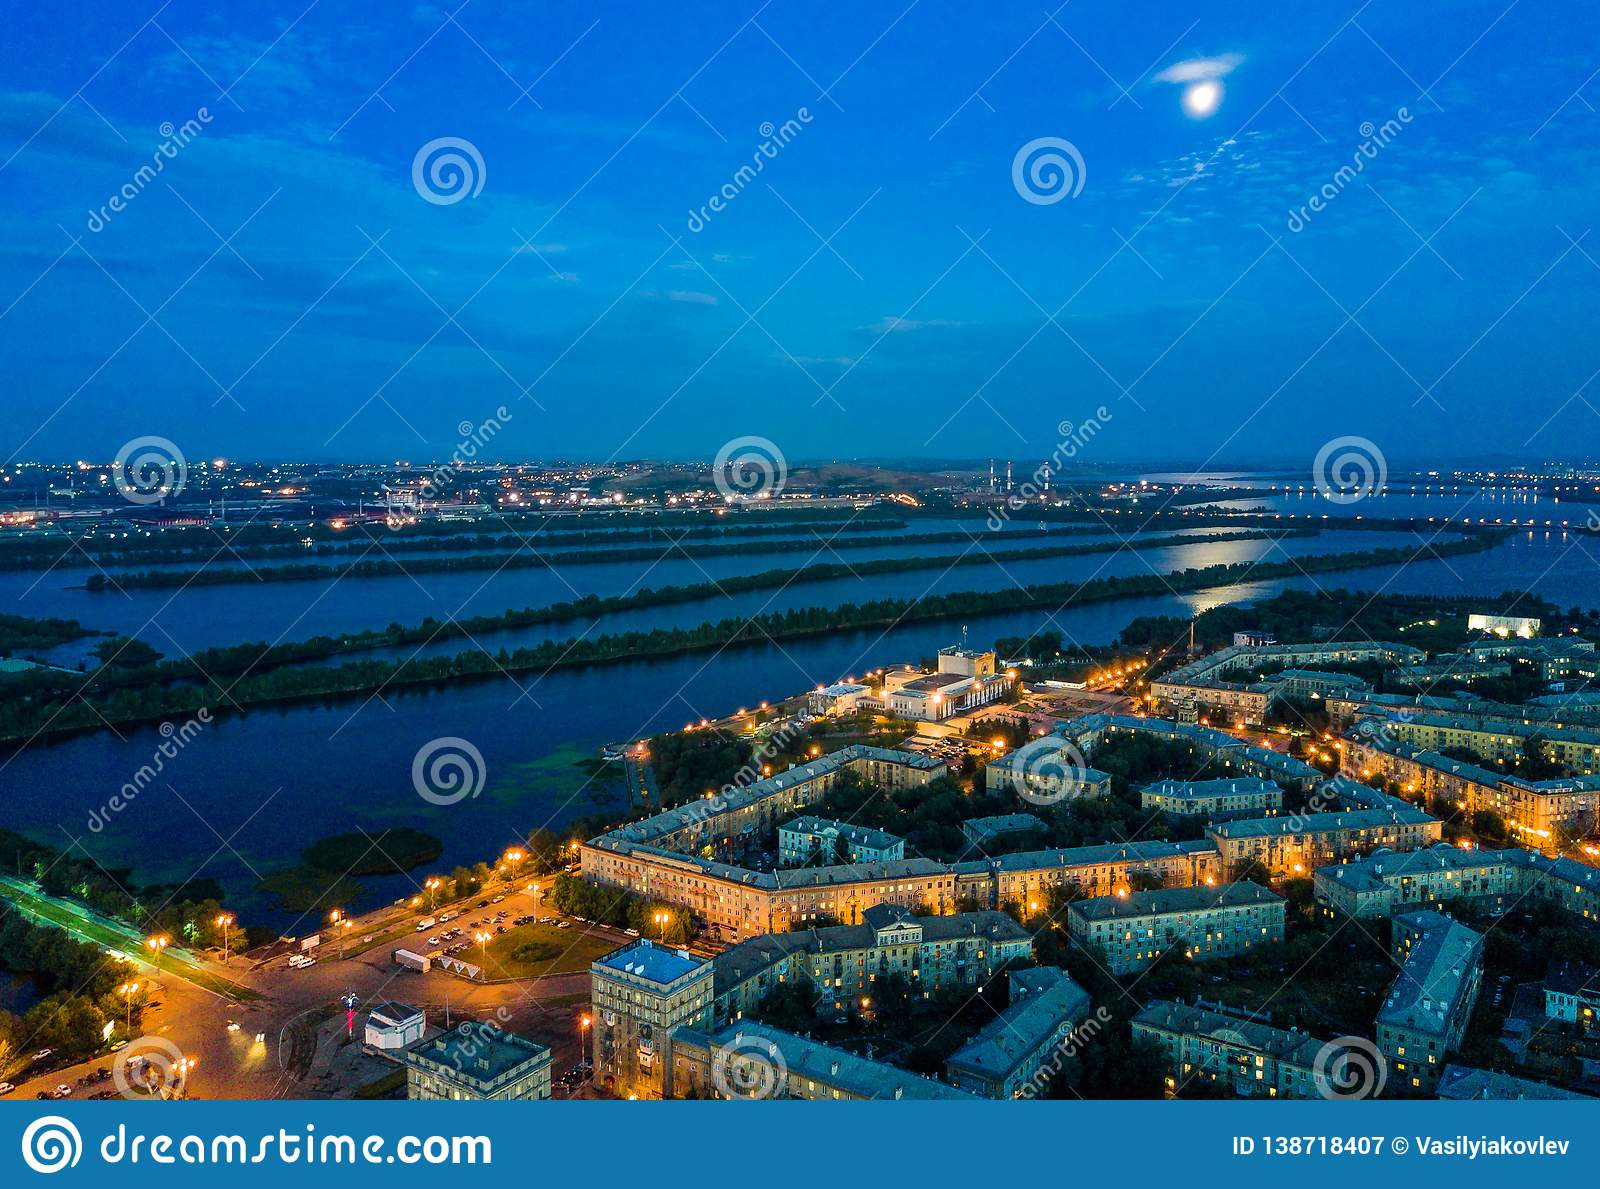 Aerial view of night Magnitogorsk, russian industrial city